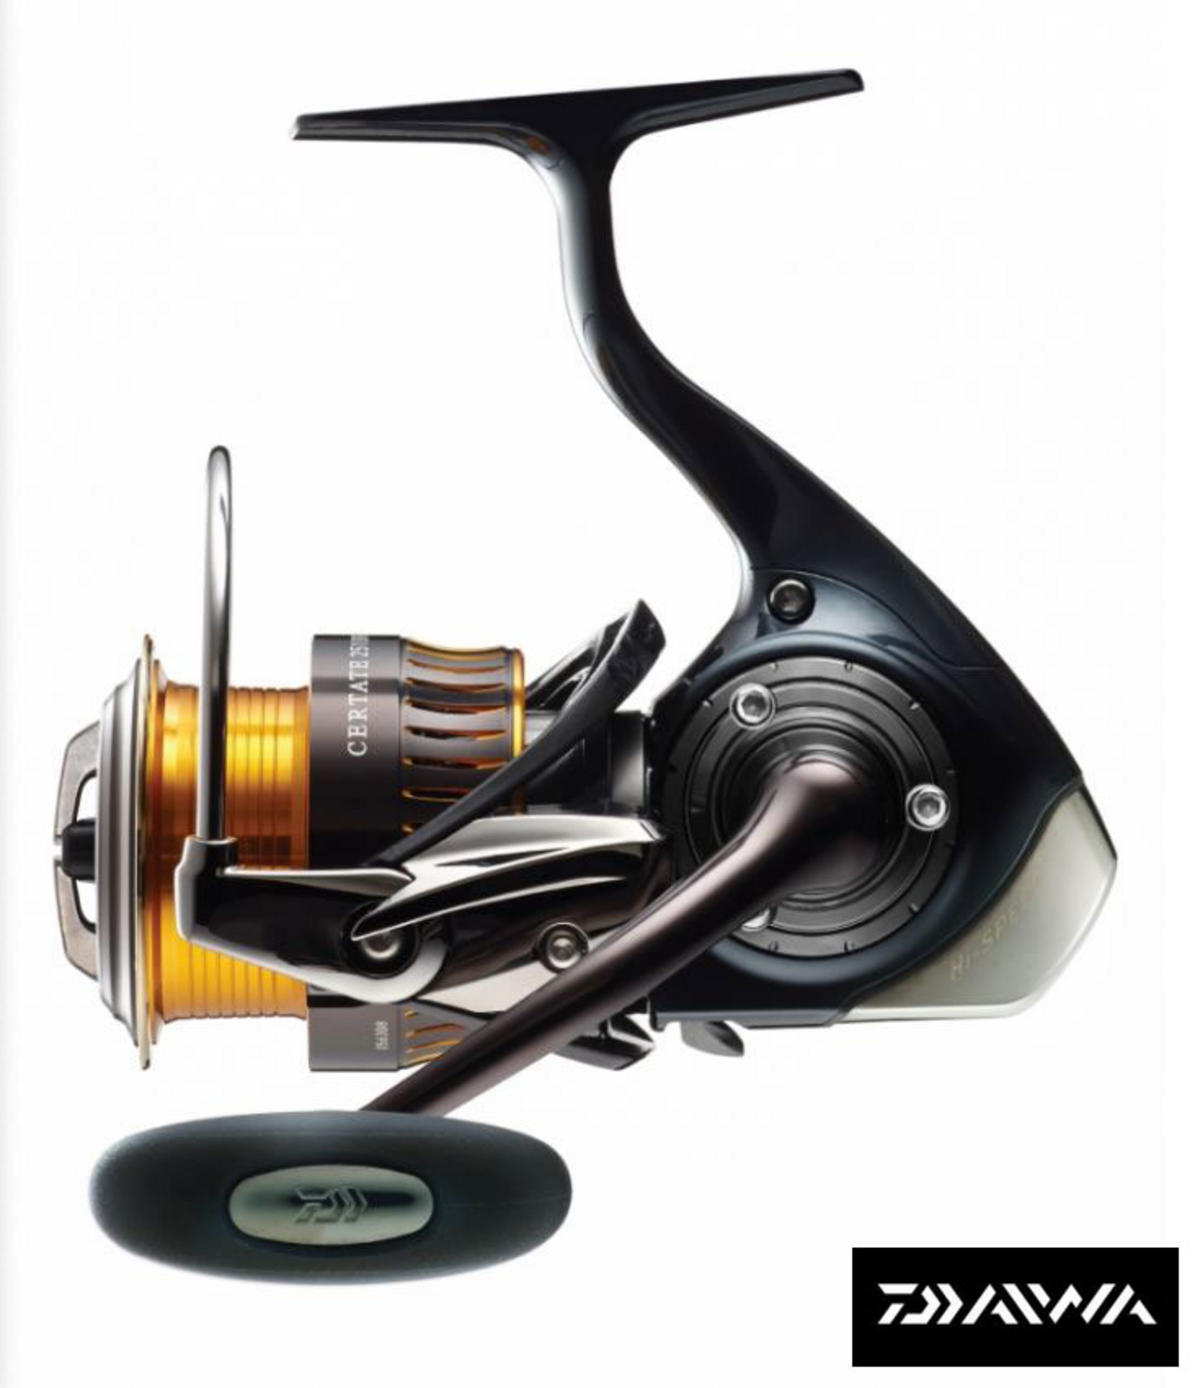 New Daiwa 16 Certate 2508PE Spinning Reel Model No. 16Certate 2508PE